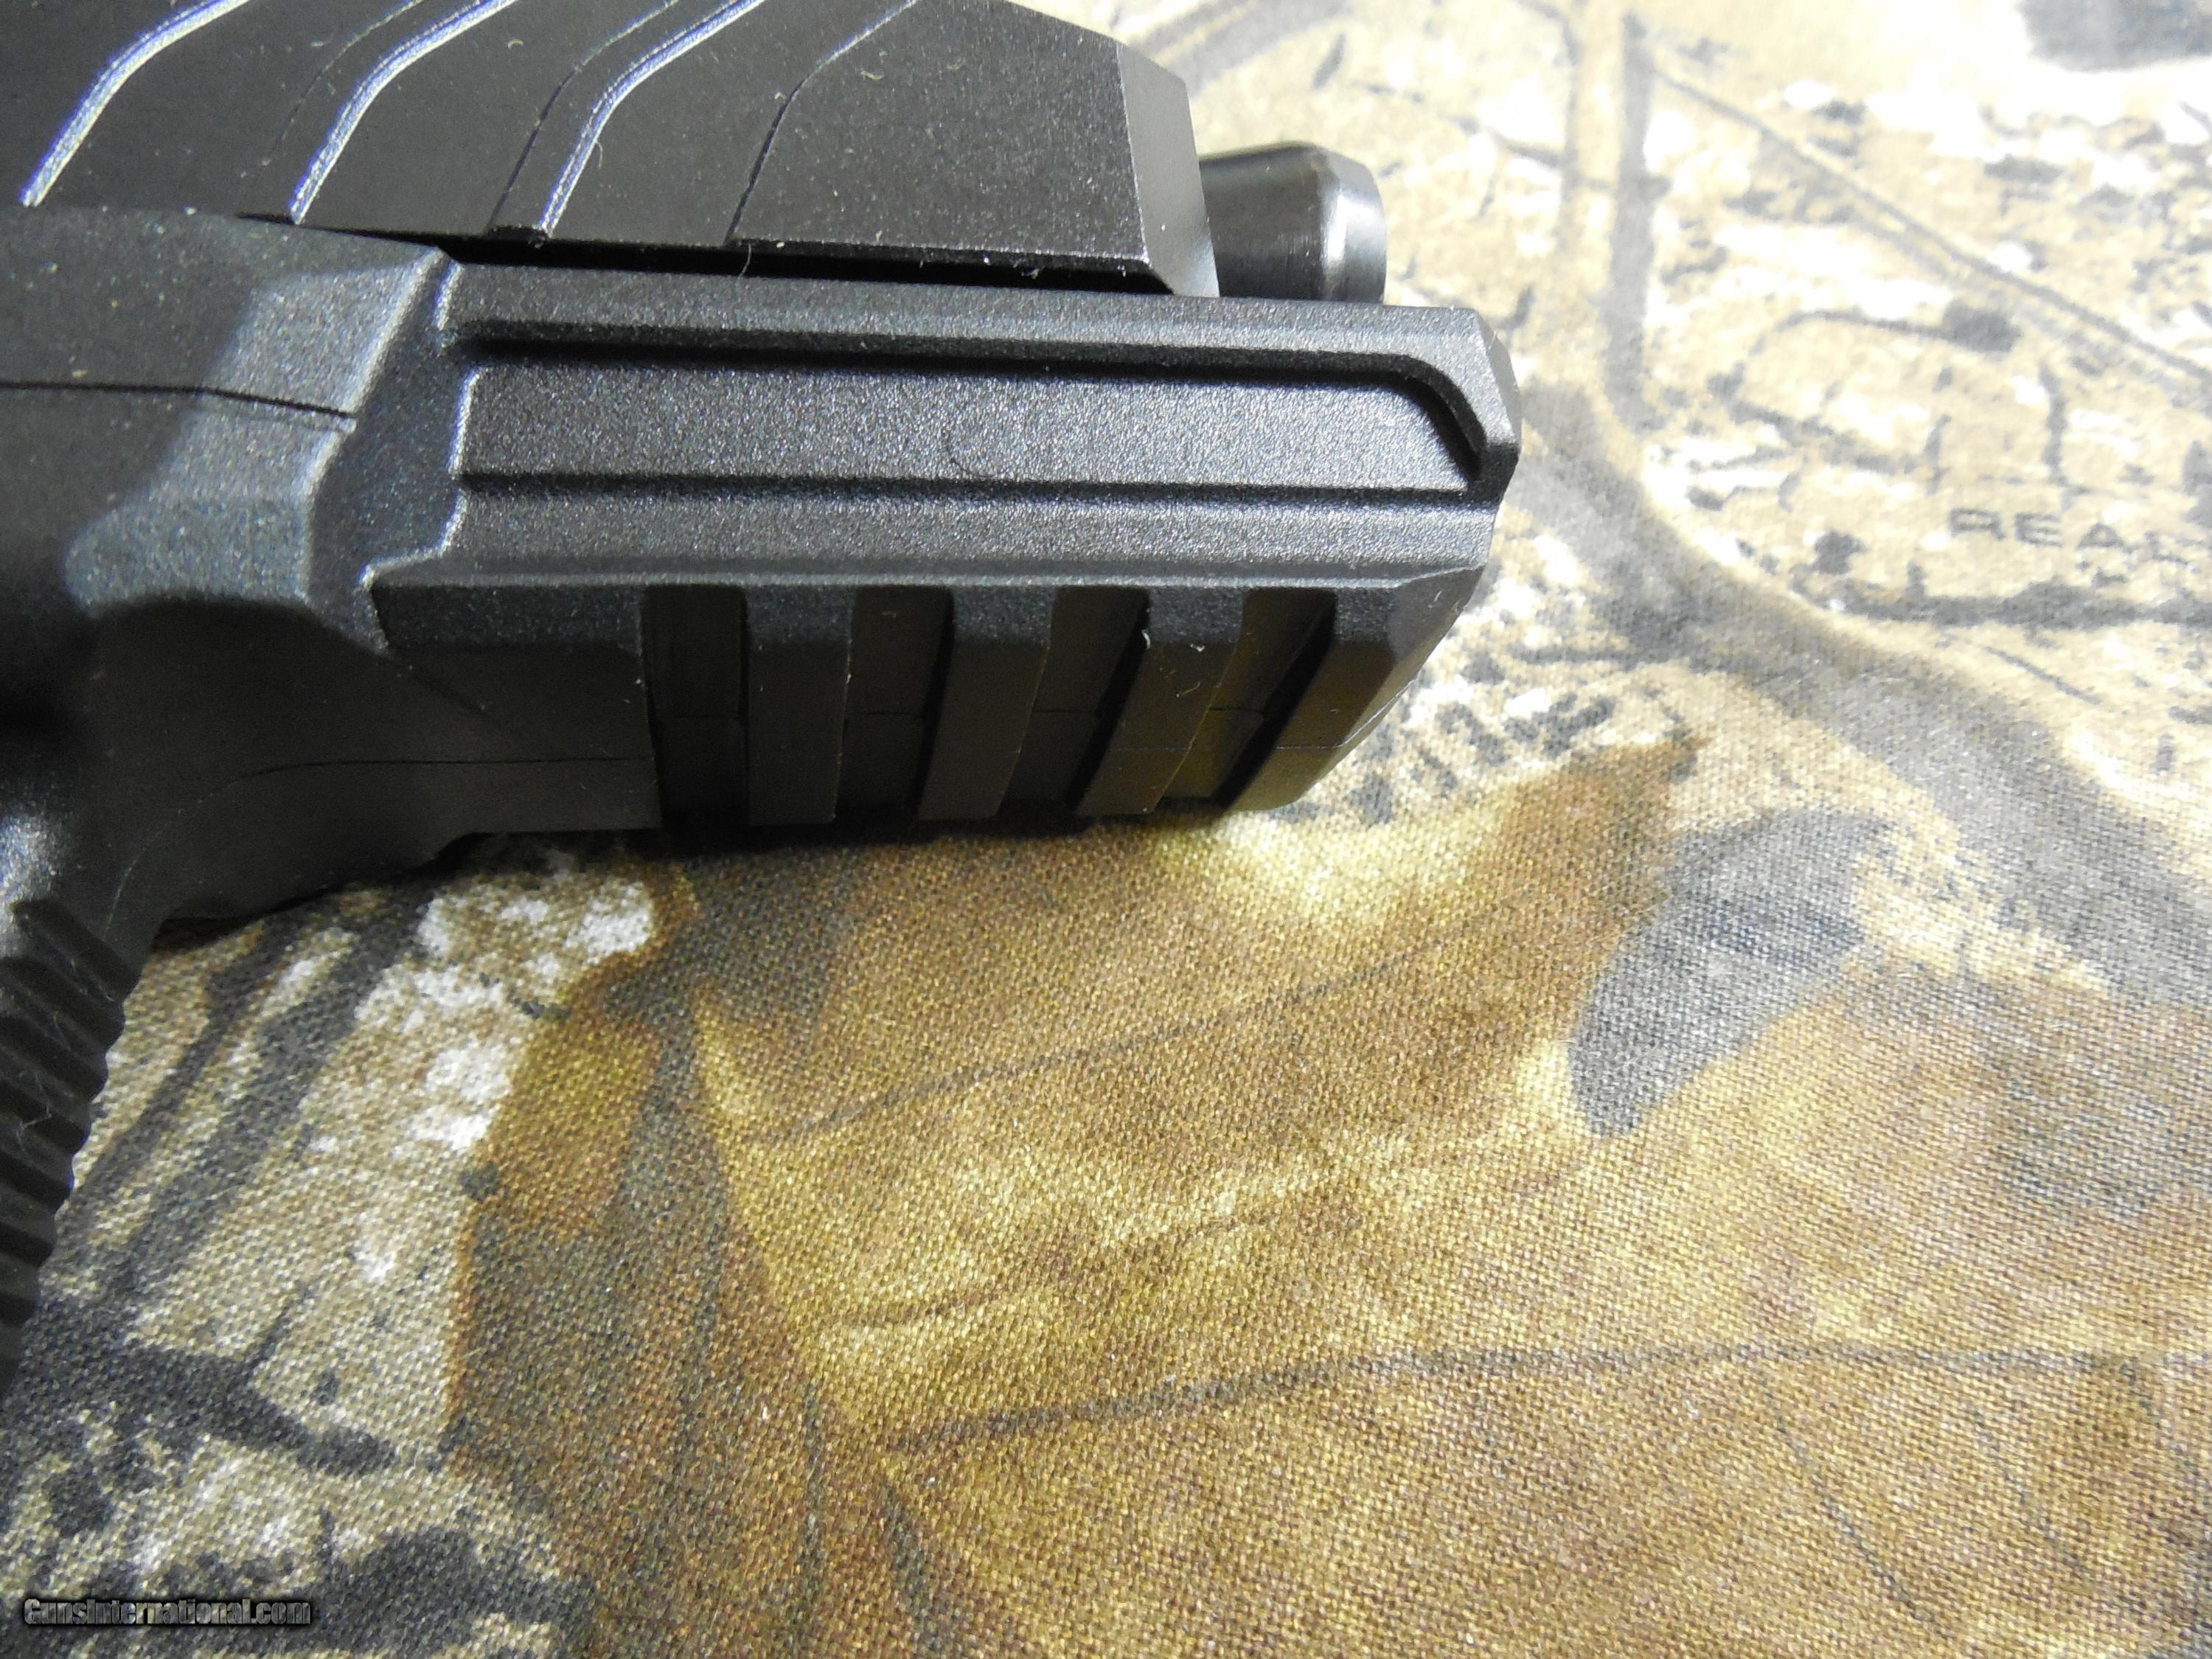 RUGER SECURITY - 9 #03810, 9 - MM, TWO - 15 ROUND MAGAZINES